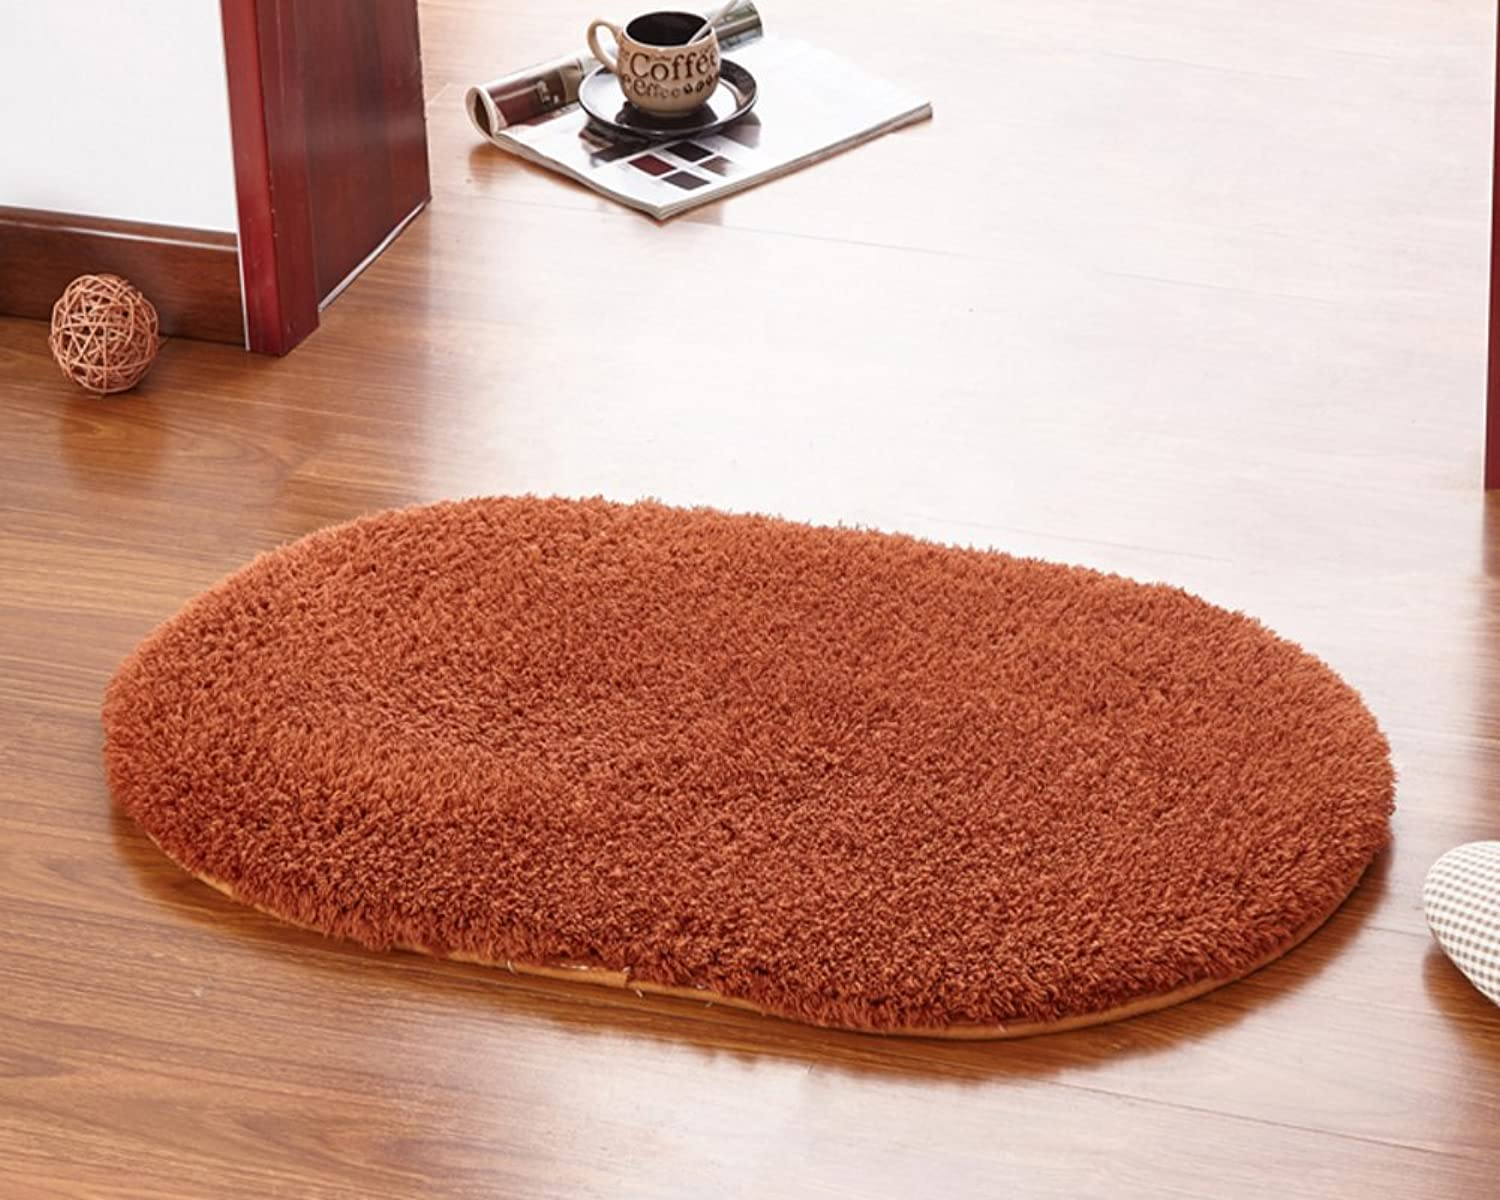 Couch mat thickening plush bedroom mat Bay window mat Room bed mat Rectangular pad-L 60x120cm(24x47inch)